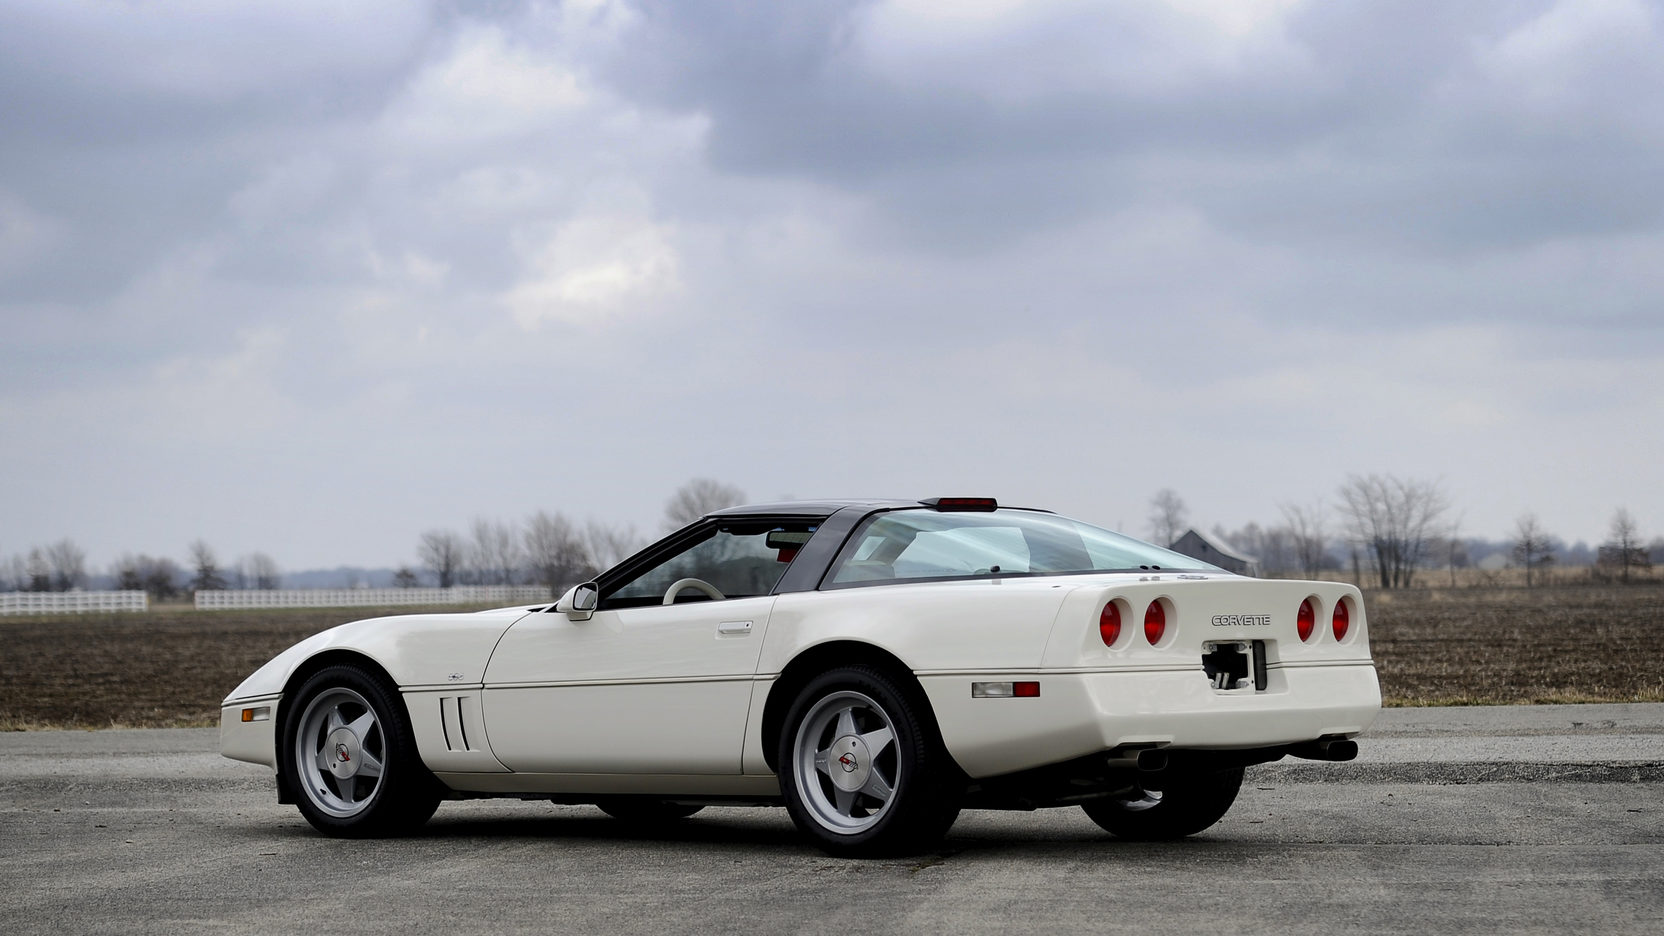 1988 Chevrolet Callaway Corvette rear 3/4